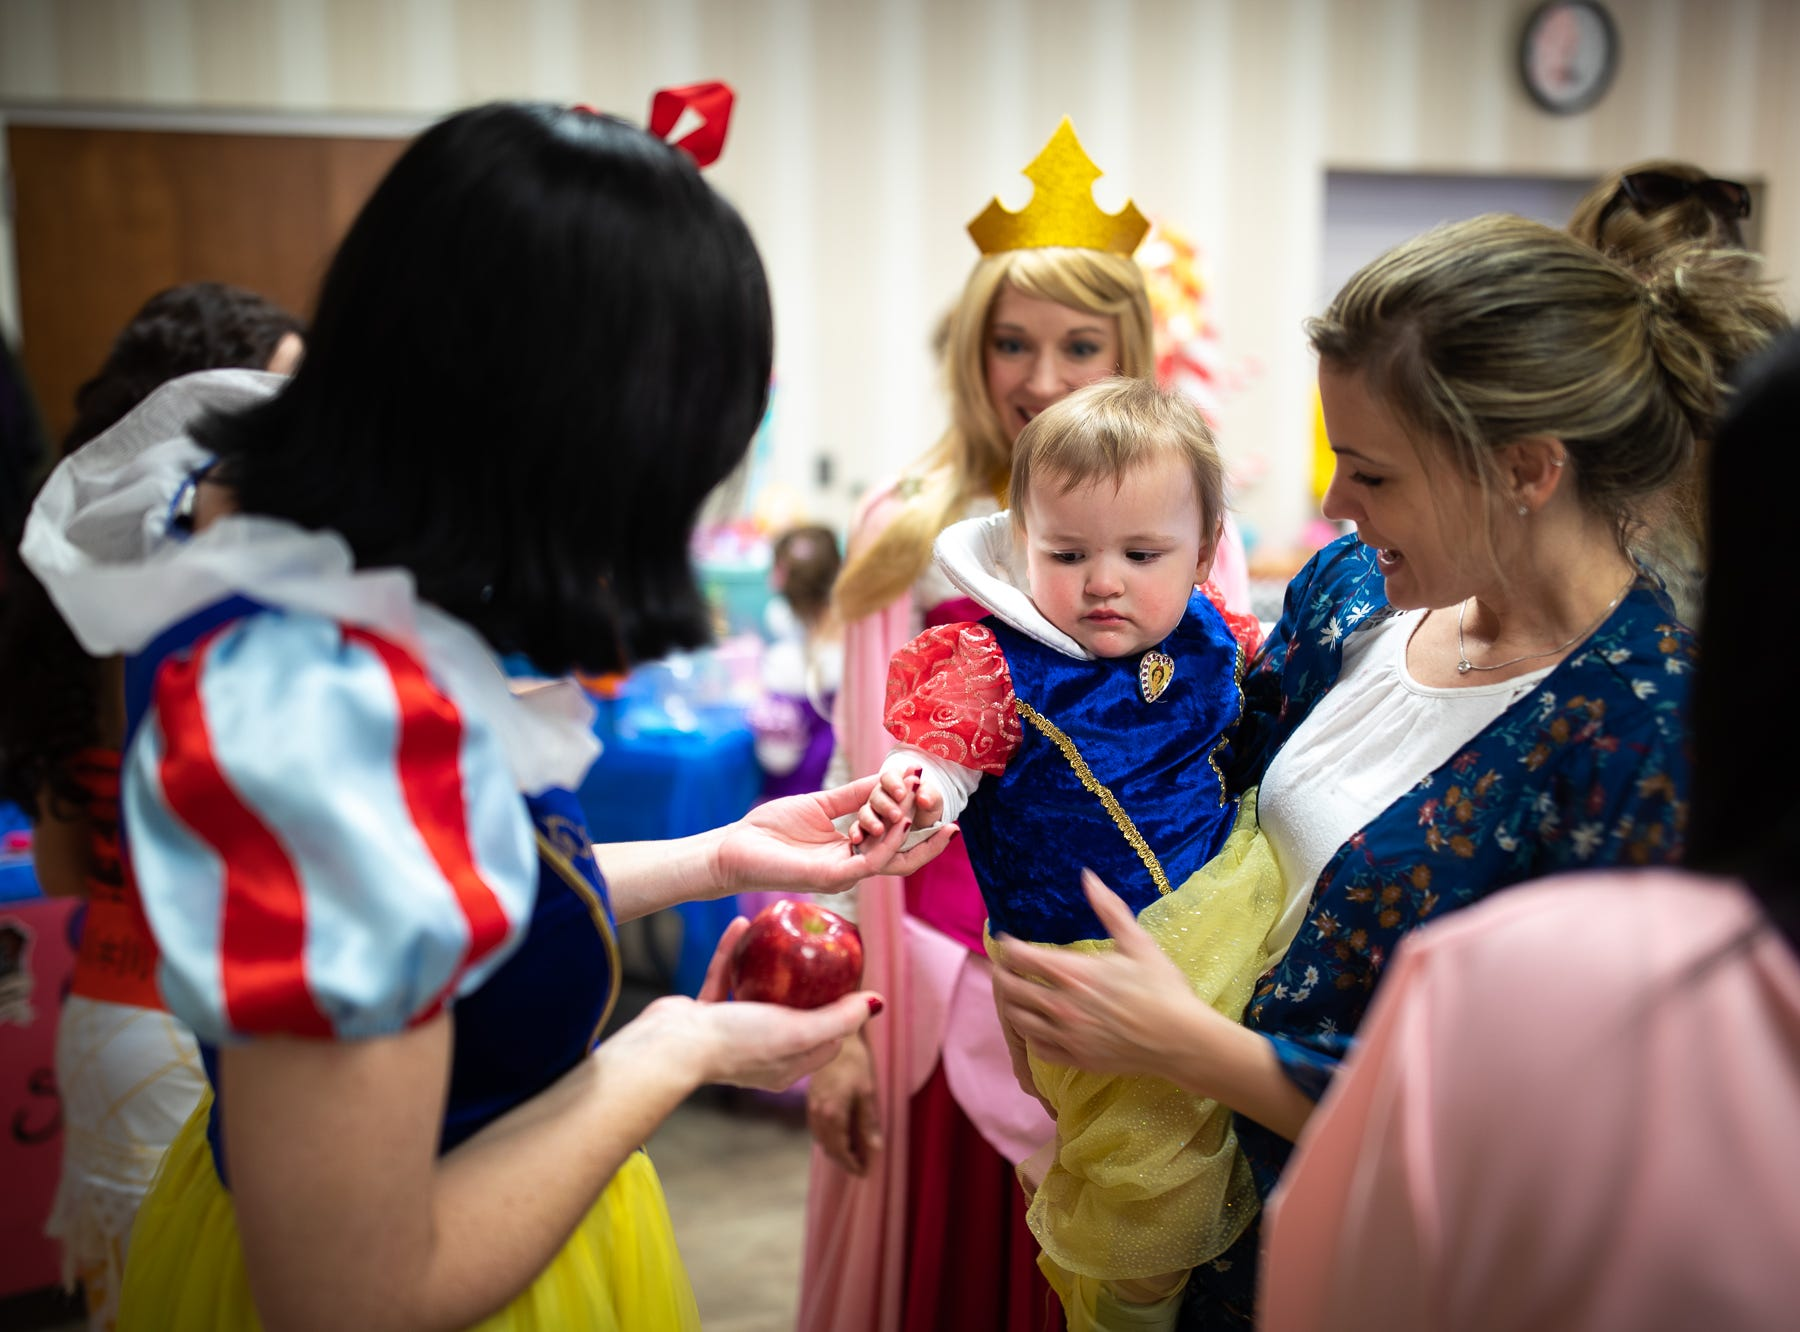 Princess Snow White speaks with Josie, almost 2, also dressed as Snow White, during a princess teatime hosted by the Black Rose Rollers, Saturday, Feb. 9, 2019, at the Hanover YWCA.